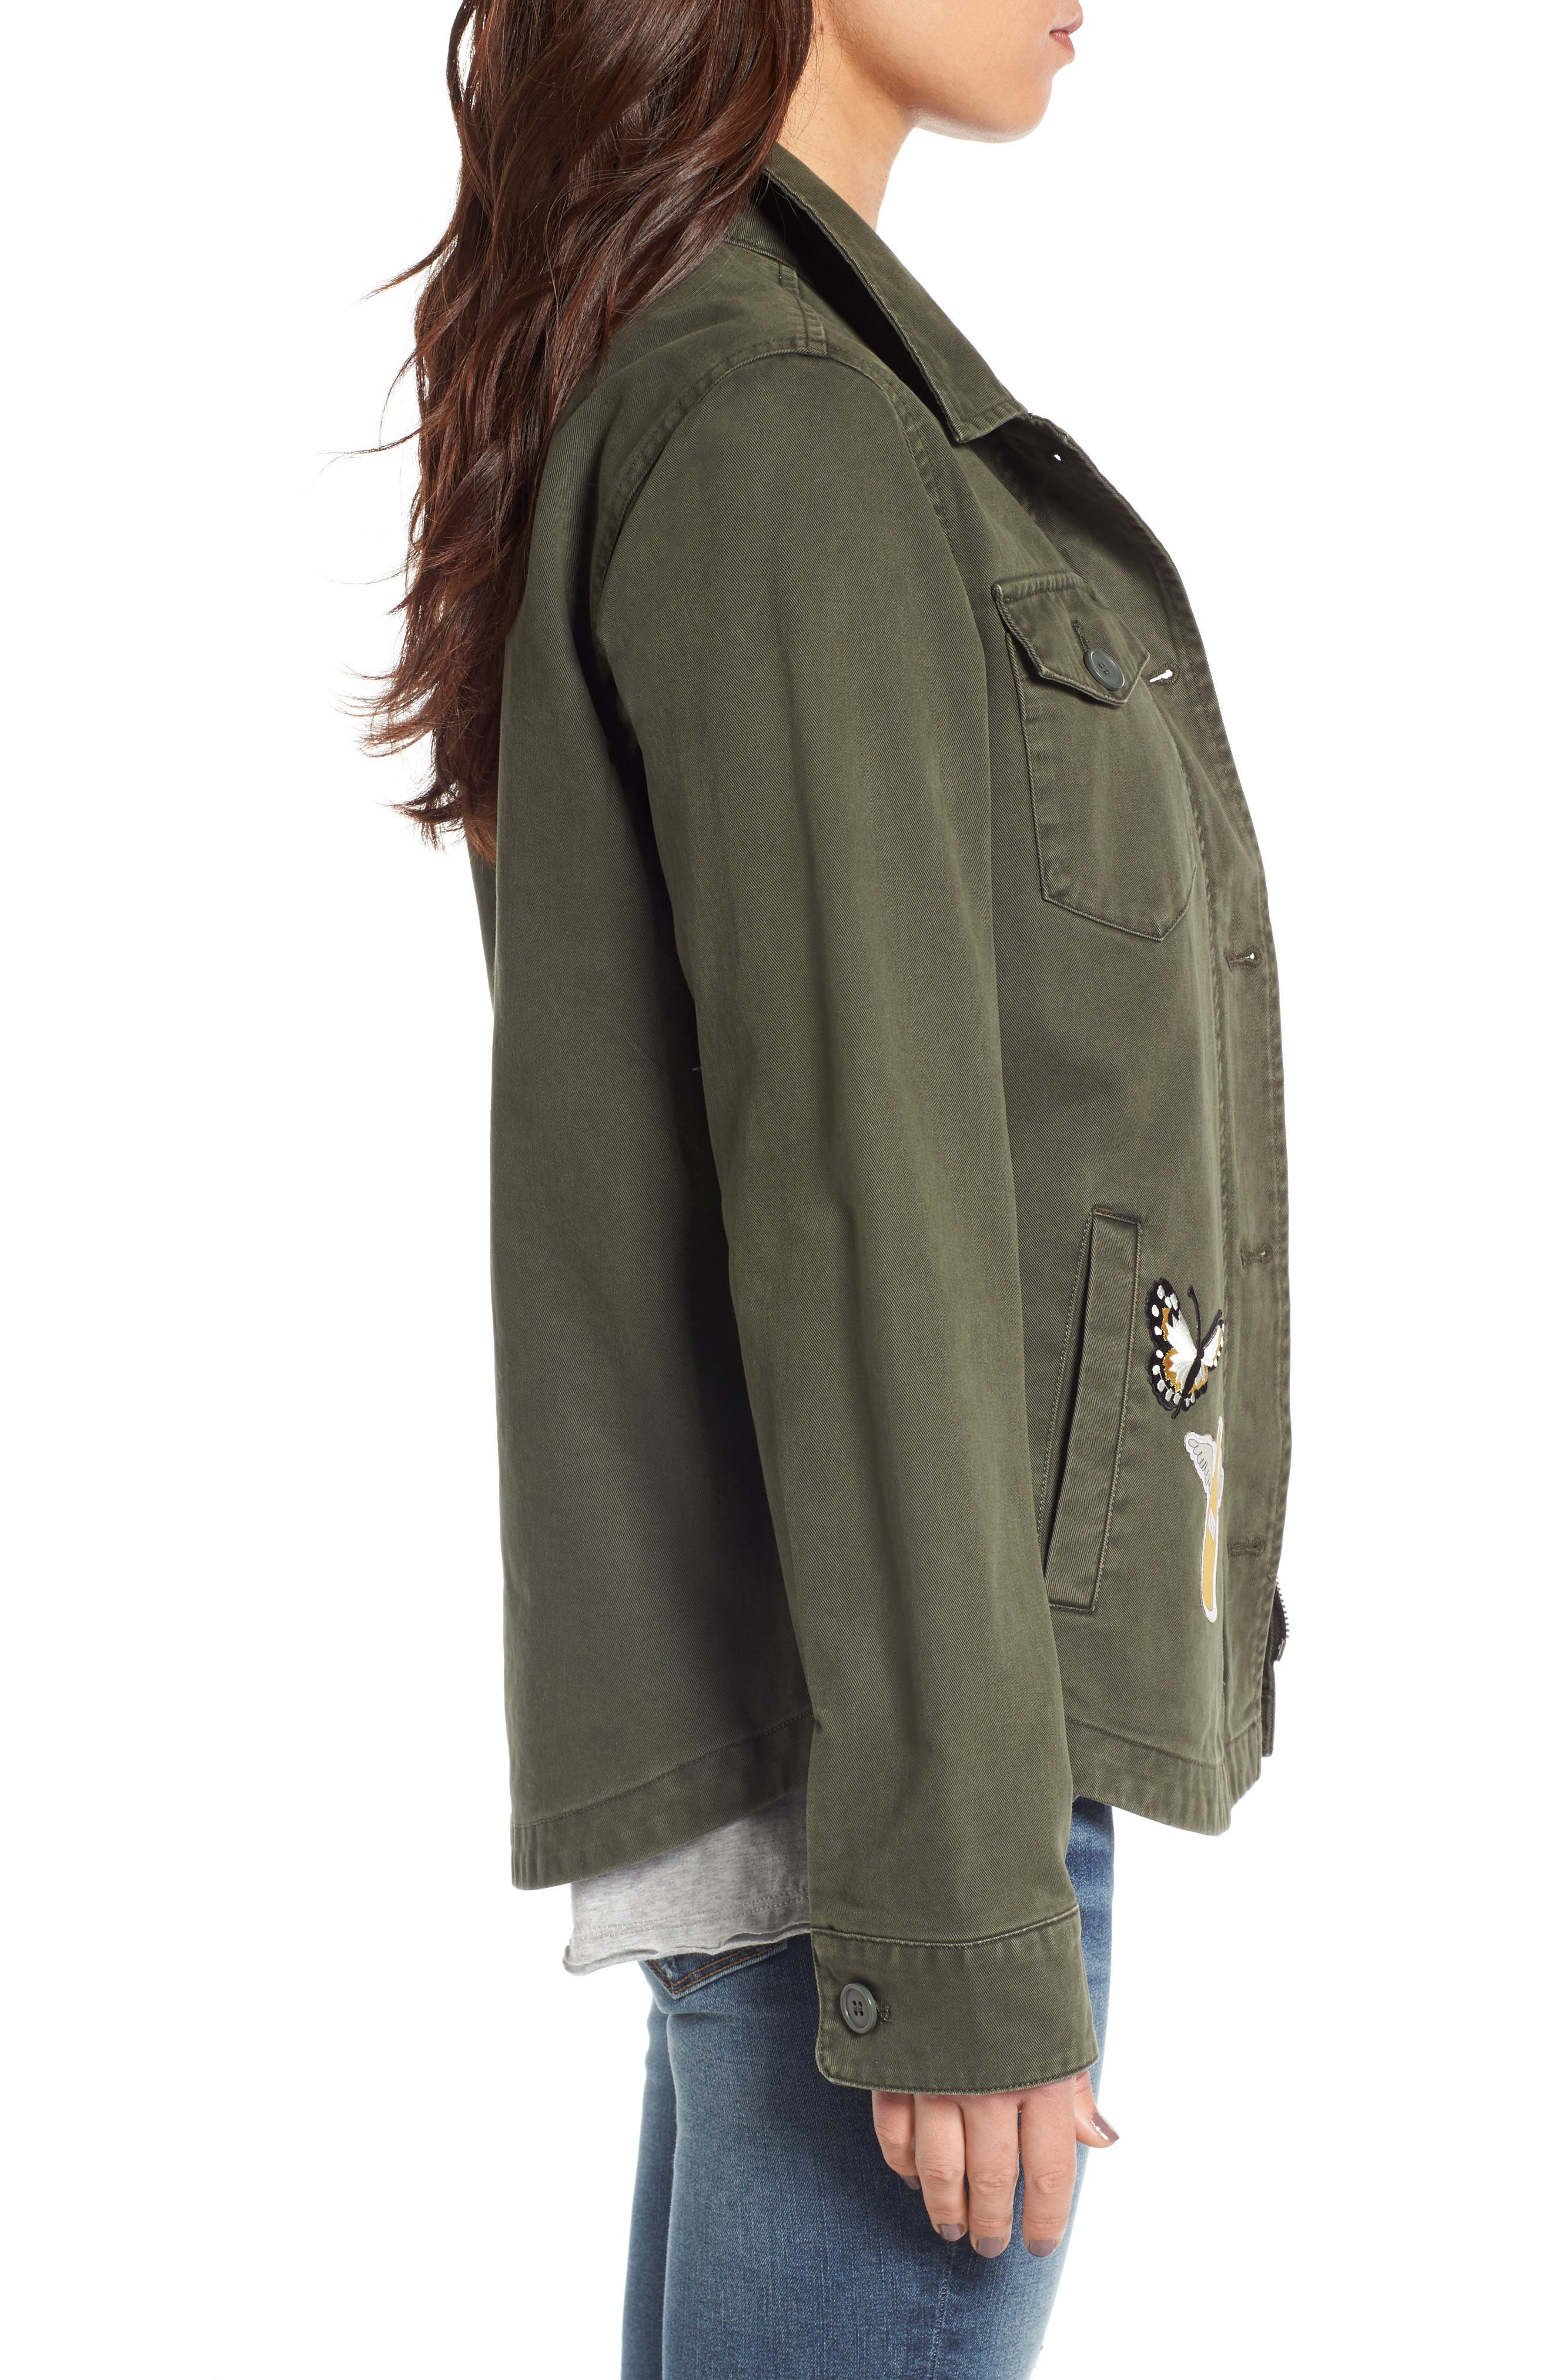 Cargo Jacket with Patches,                             Alternate thumbnail 3, color,